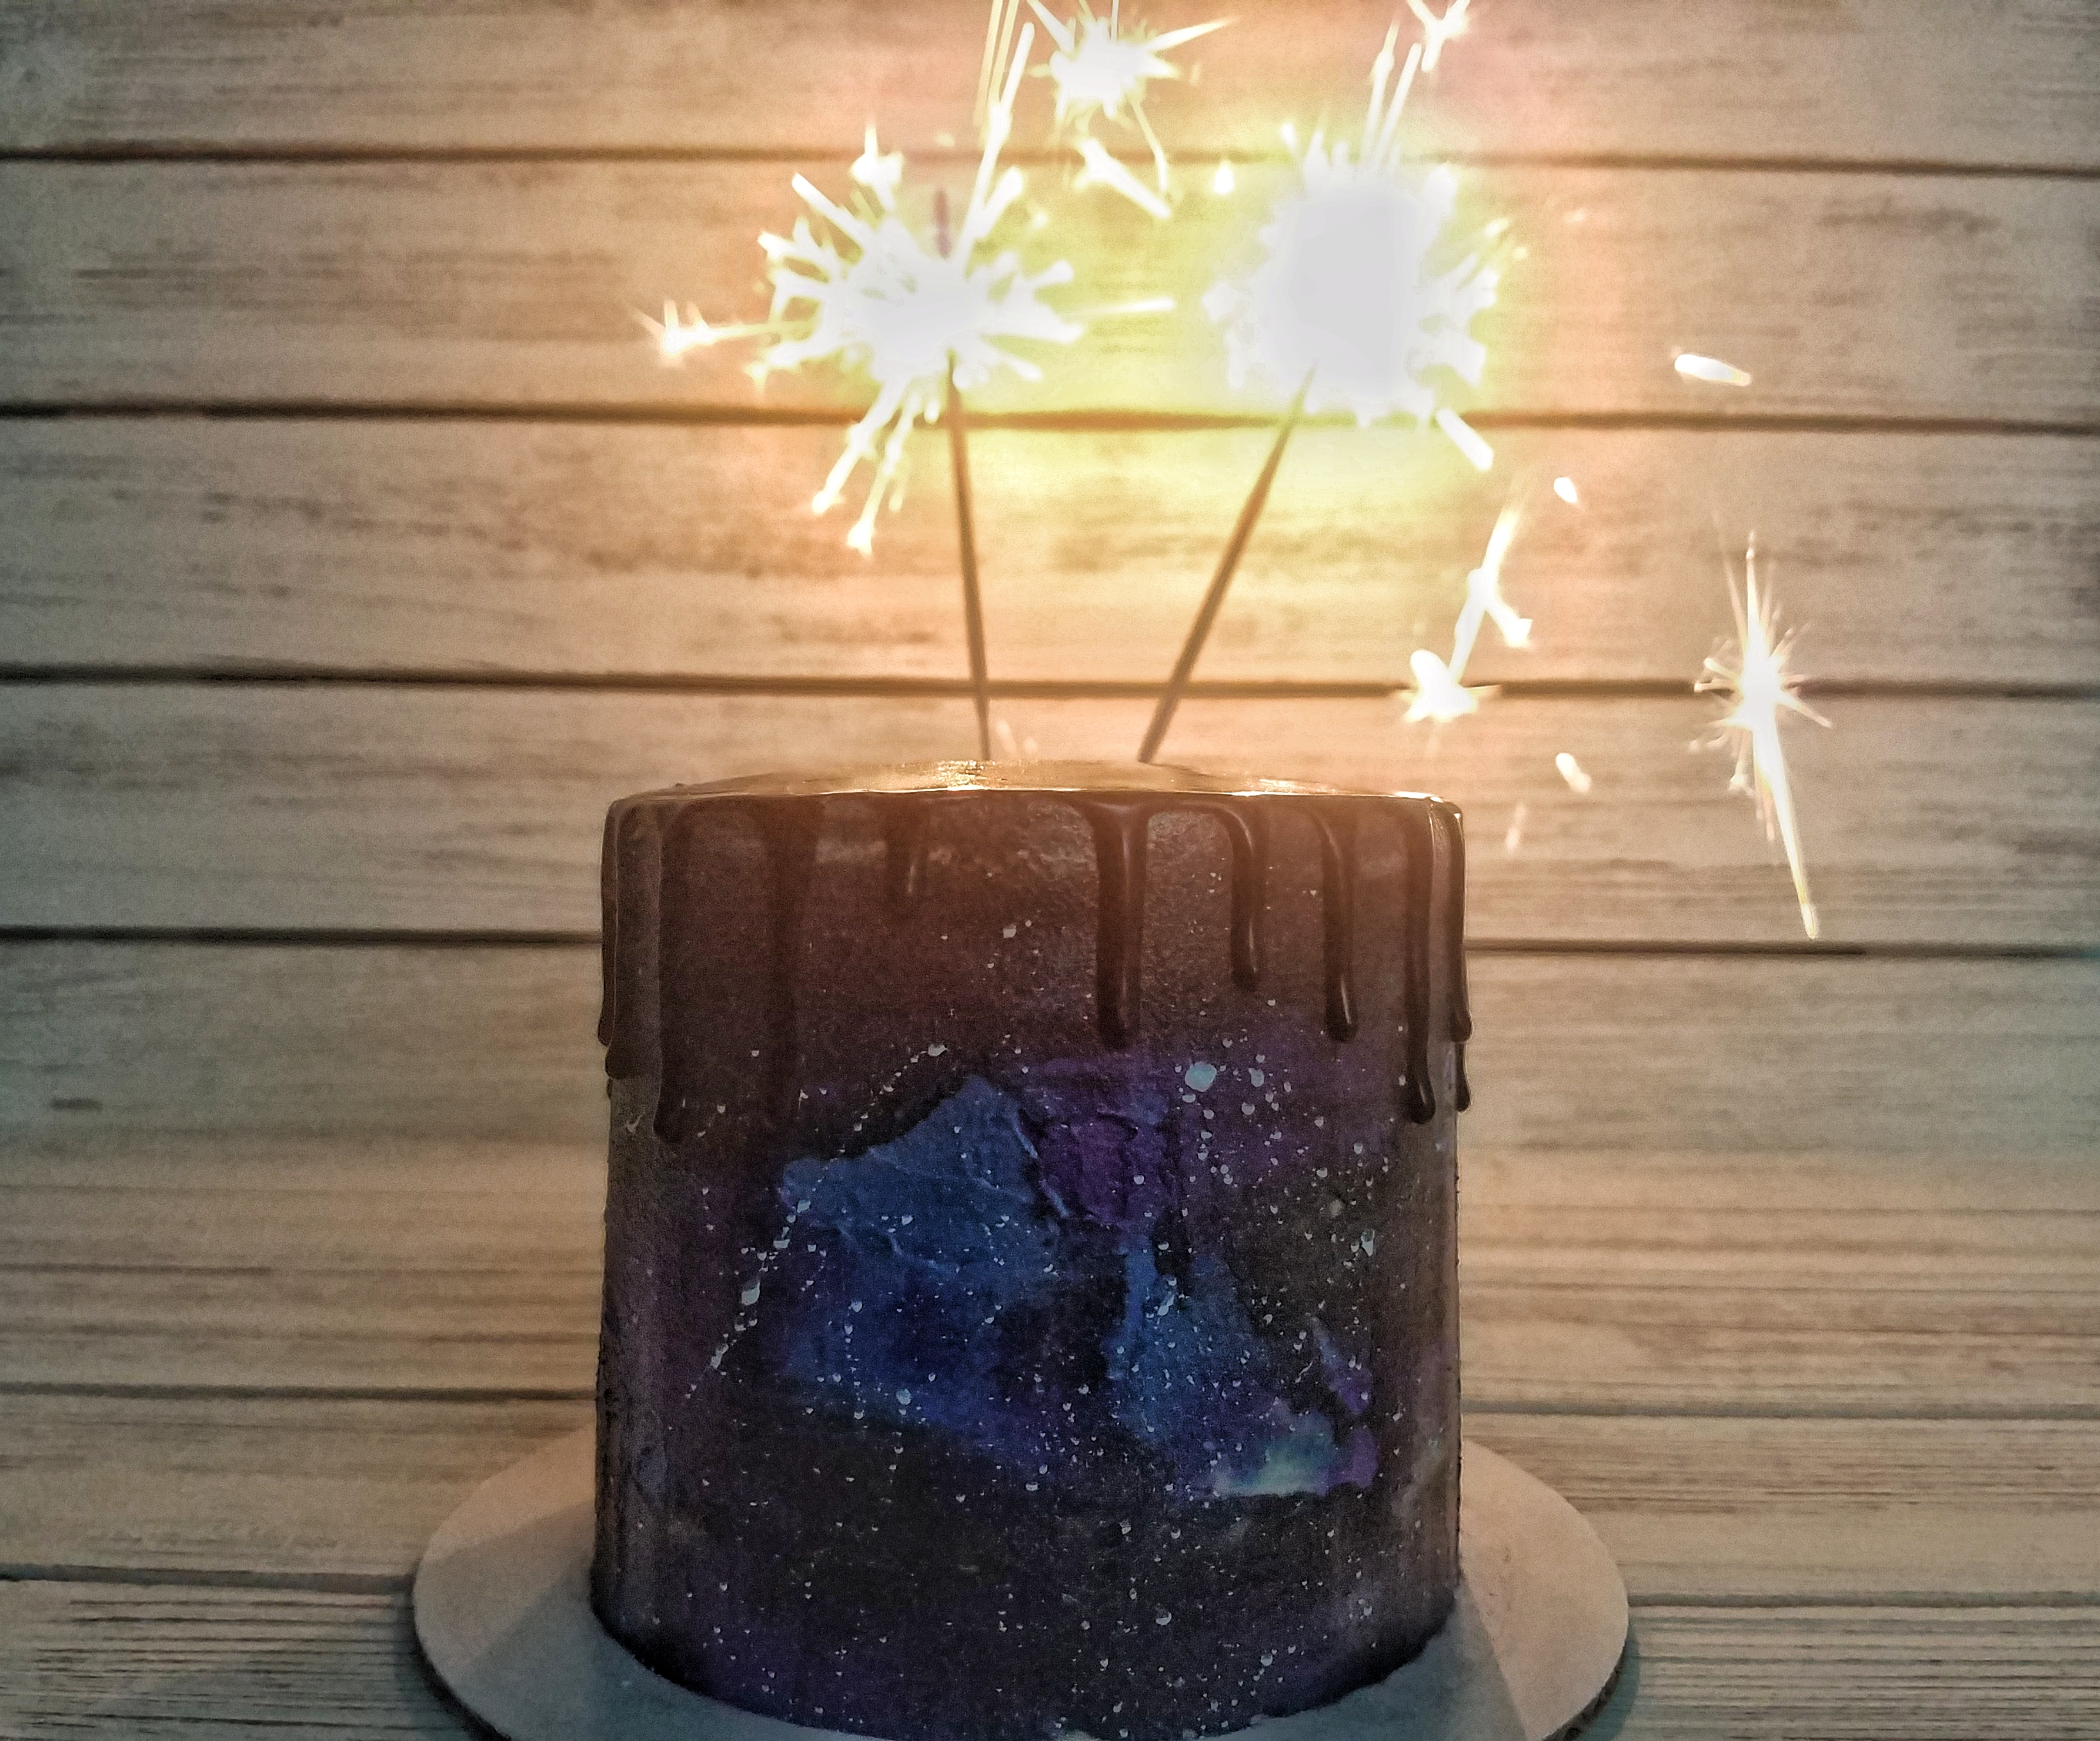 If You Are Looking For A Way To Make Your Birthday Party Something Little More Unique And Fun All Who Attend Consider Adding Cake Sparklers